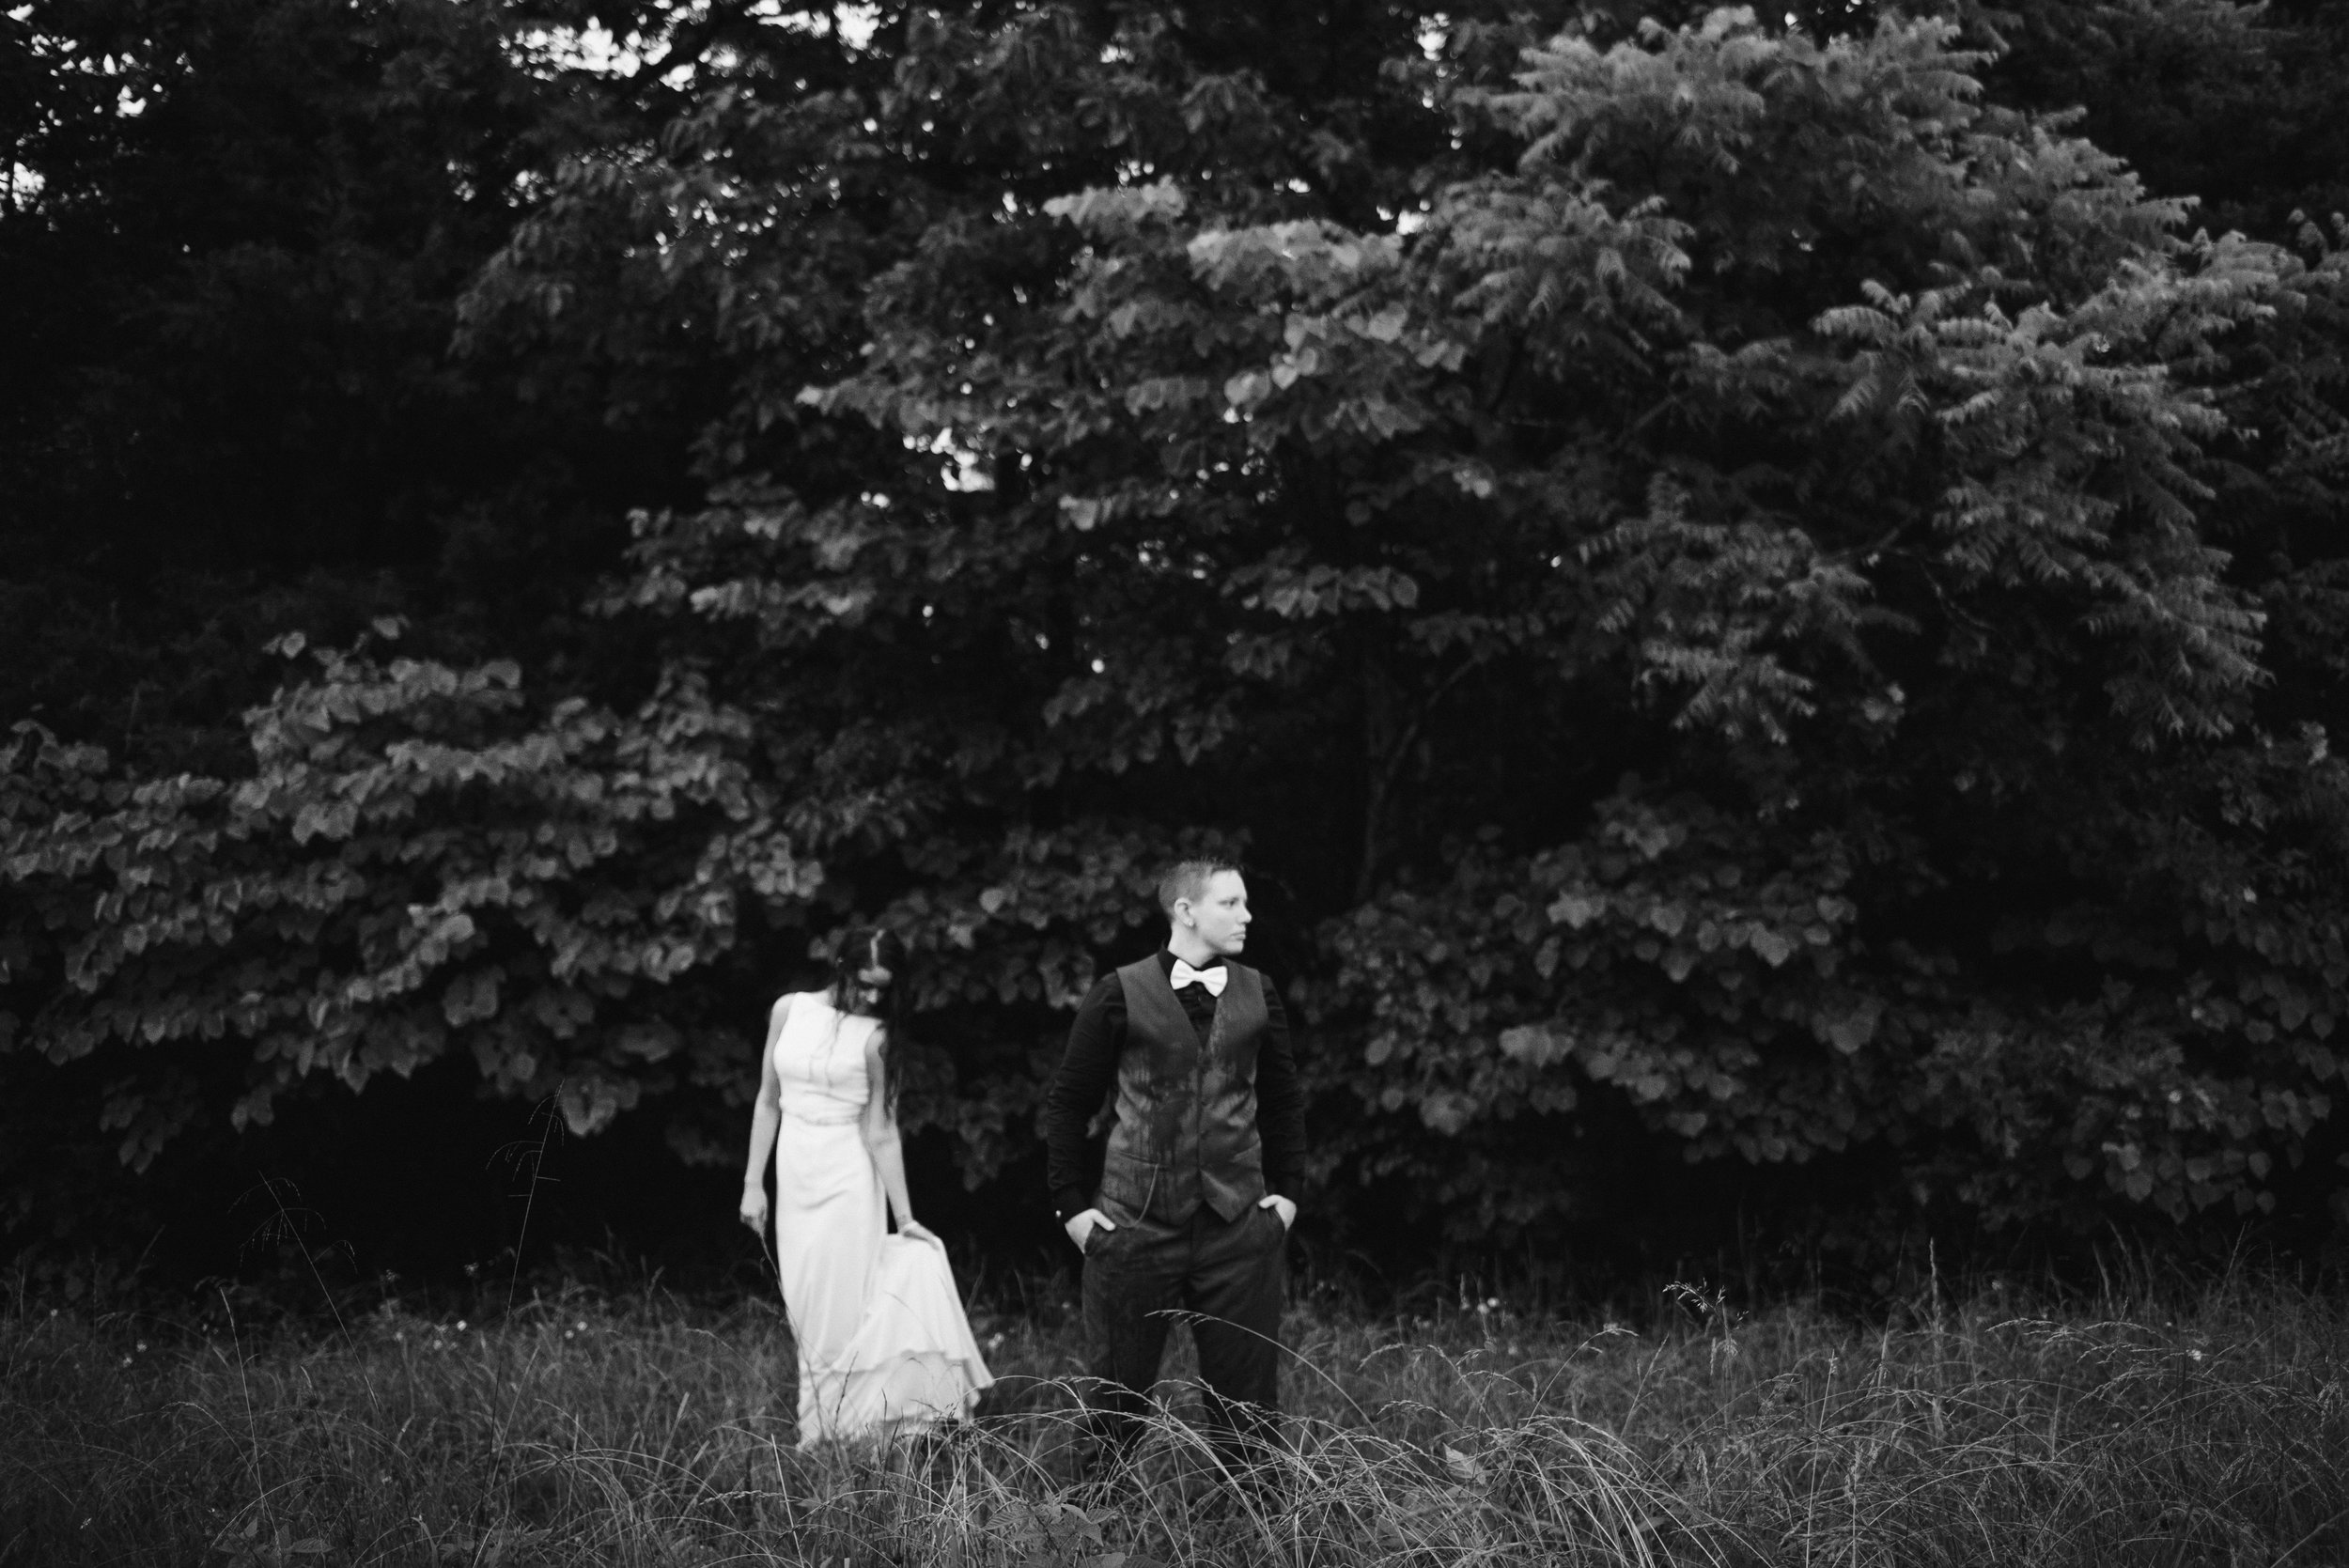 post-wedding session with two women posing in wedding attire in field with trees behind them